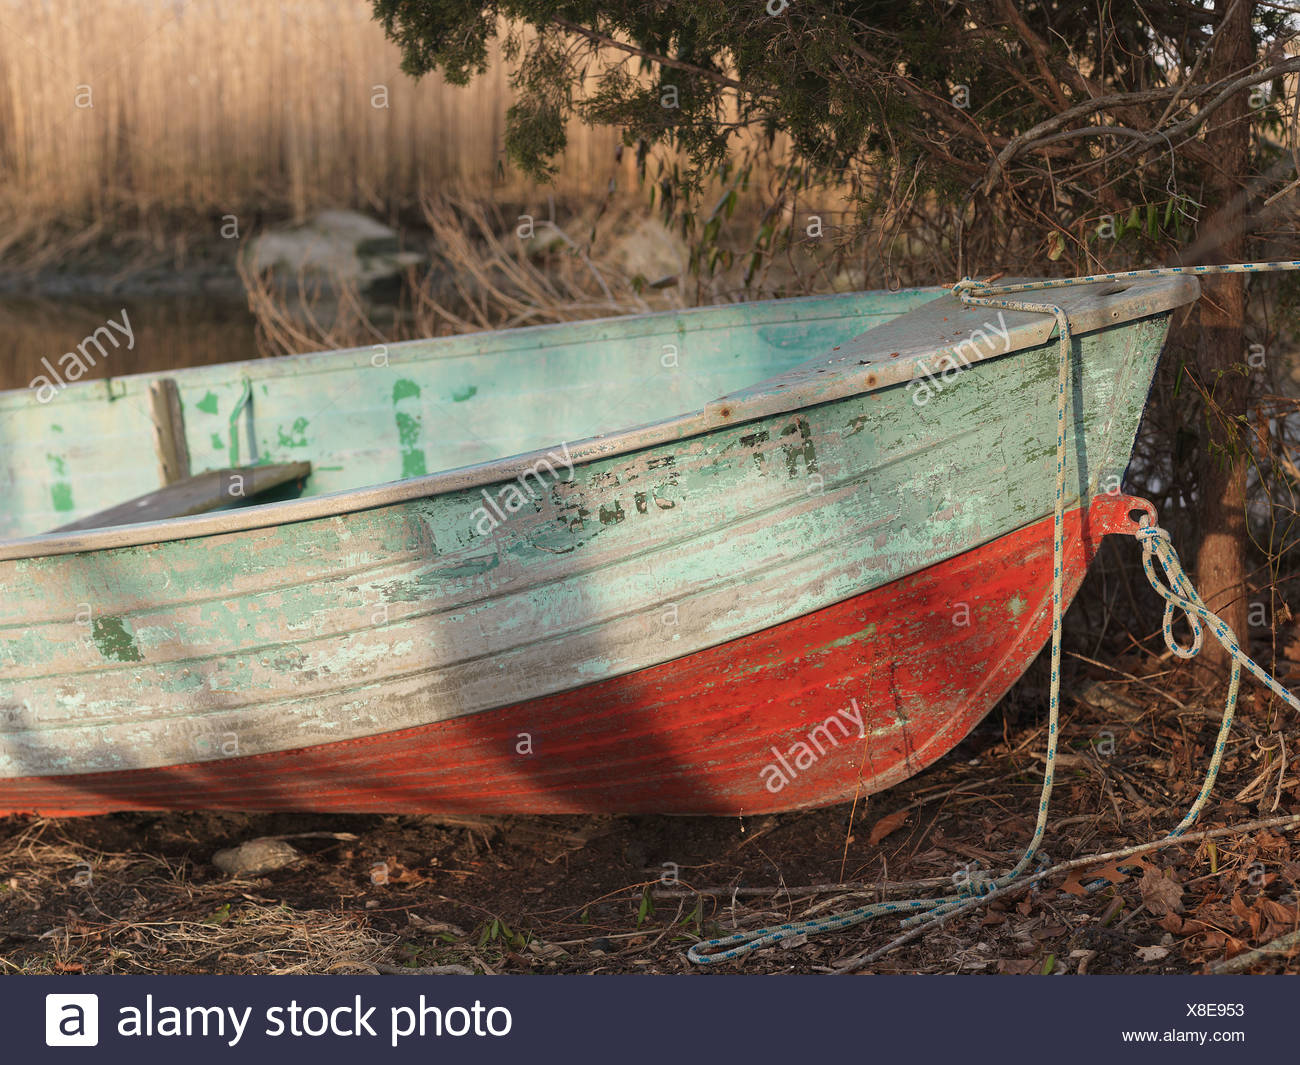 old, patina, flaking, paint, green, blue, red, rivets, boat, rowing, aluminum, edge, rear, rope, knot, rust, age, color, edge, - Stock Image